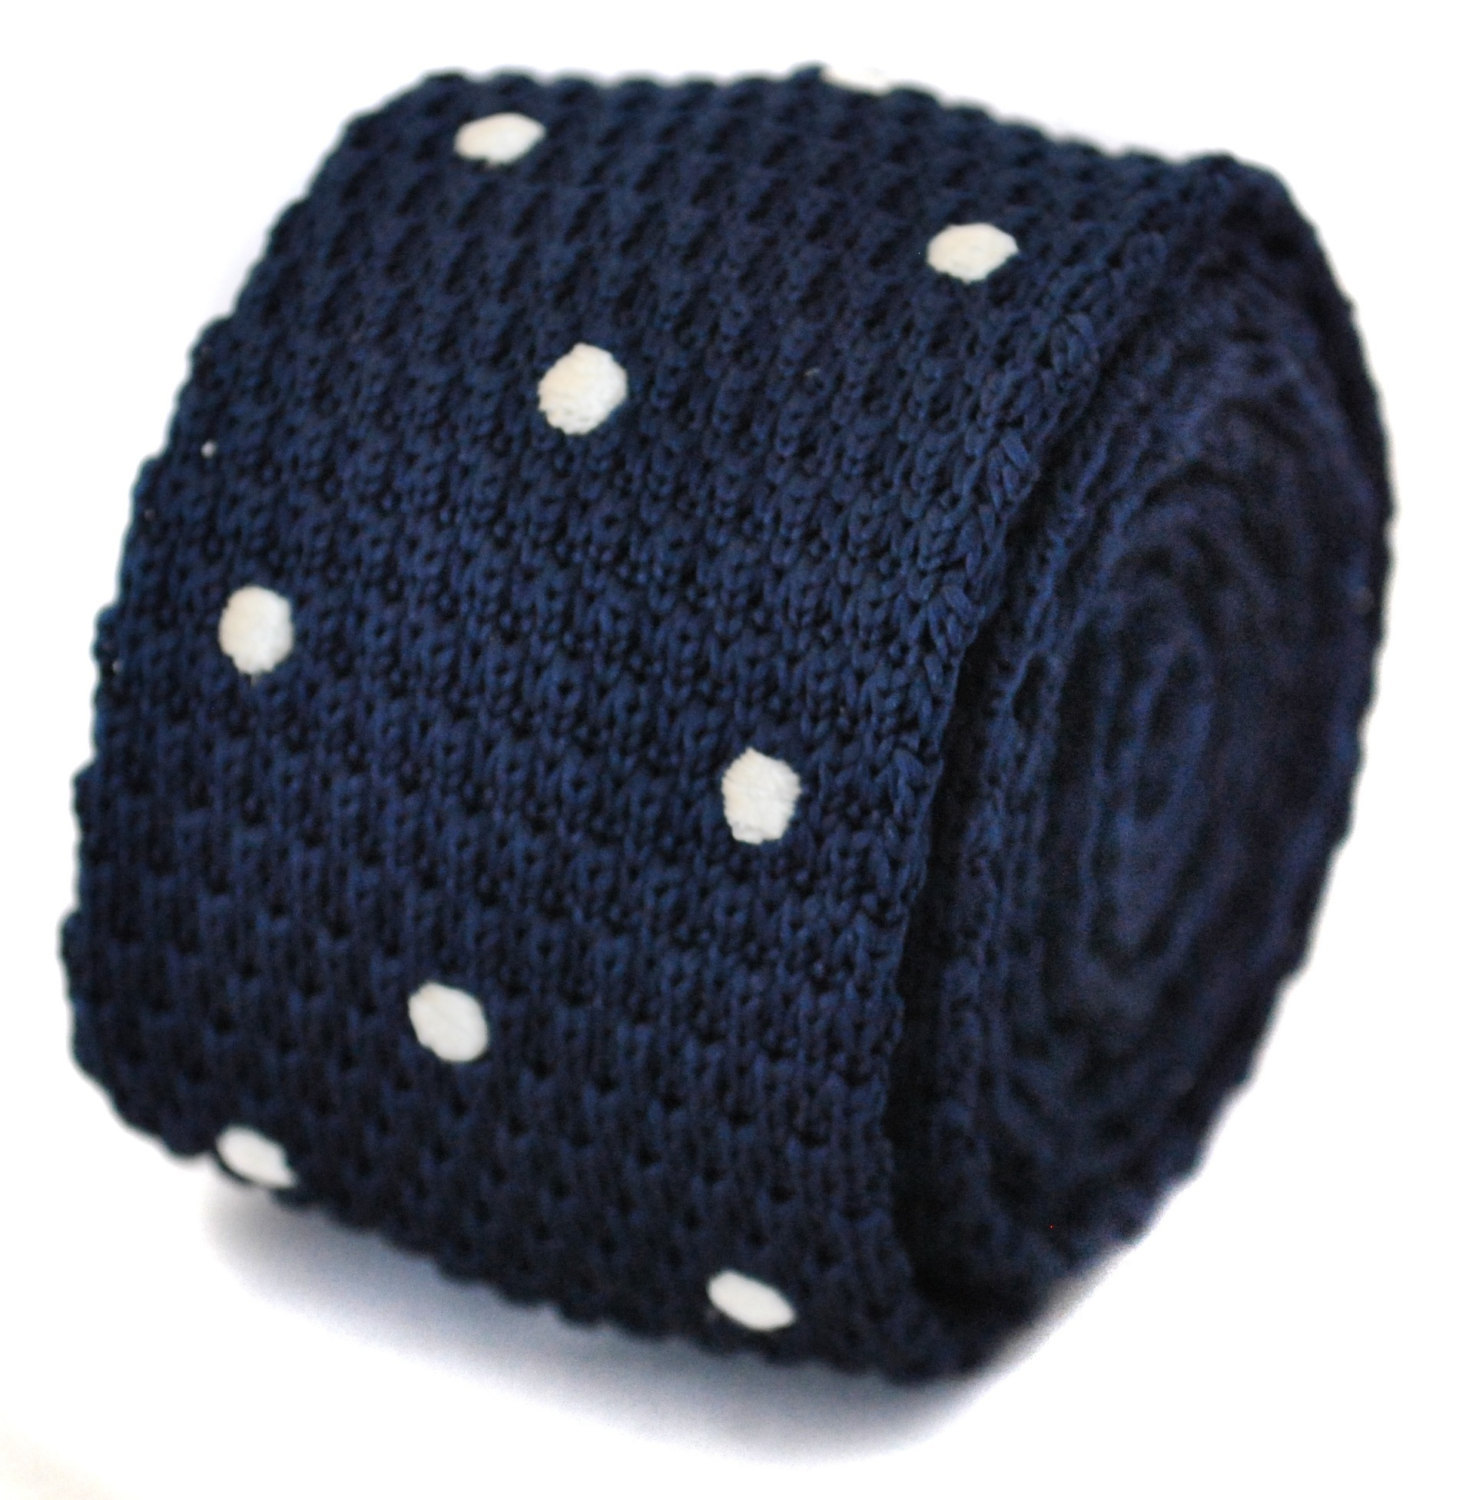 knitted navy and white spotted skinny tie by Frederick Thomas FT1183